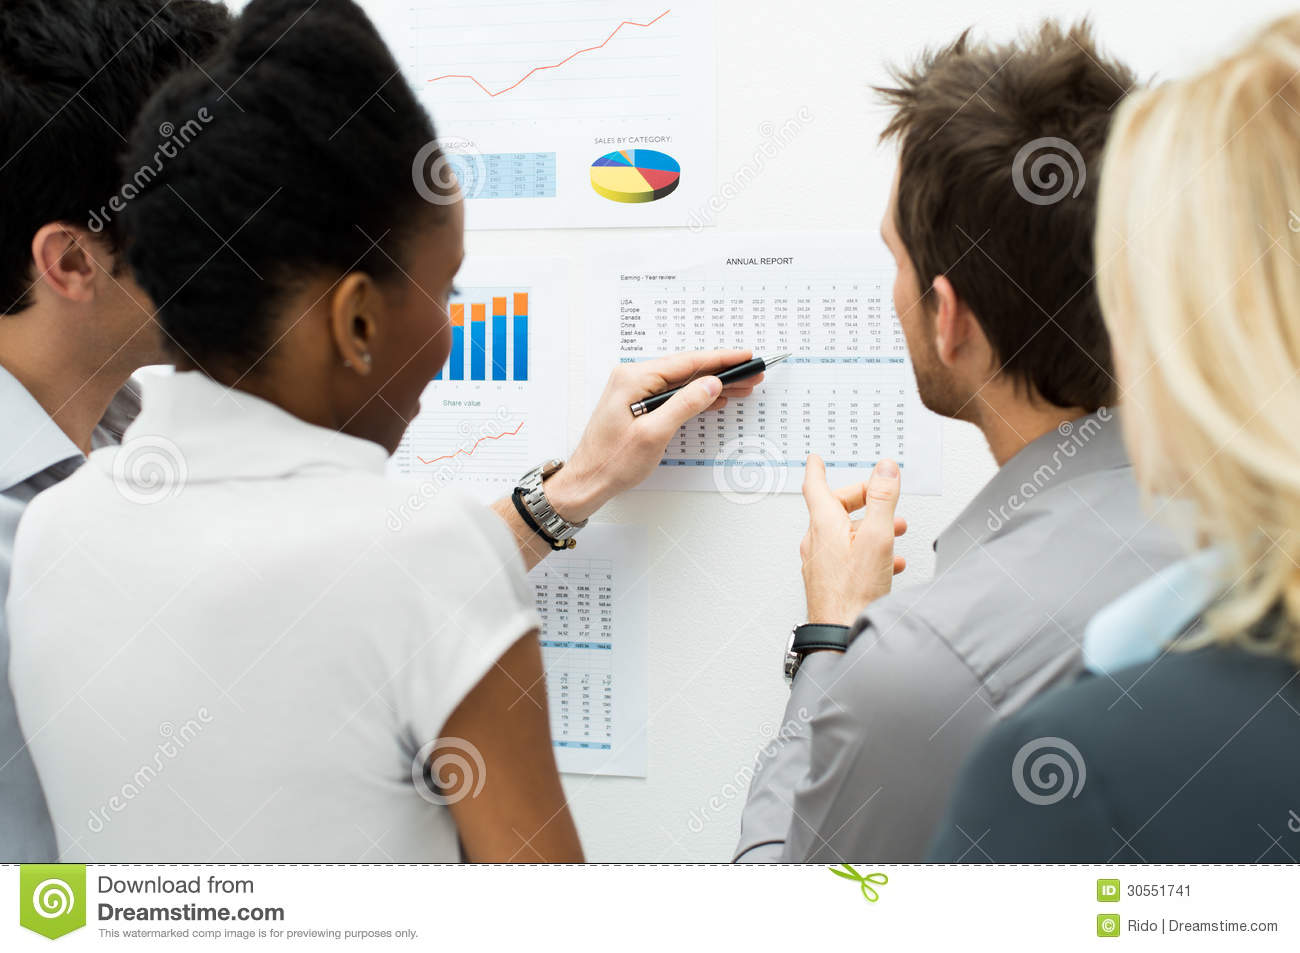 Discussing Annual Report Stock Image - Image: 30551741